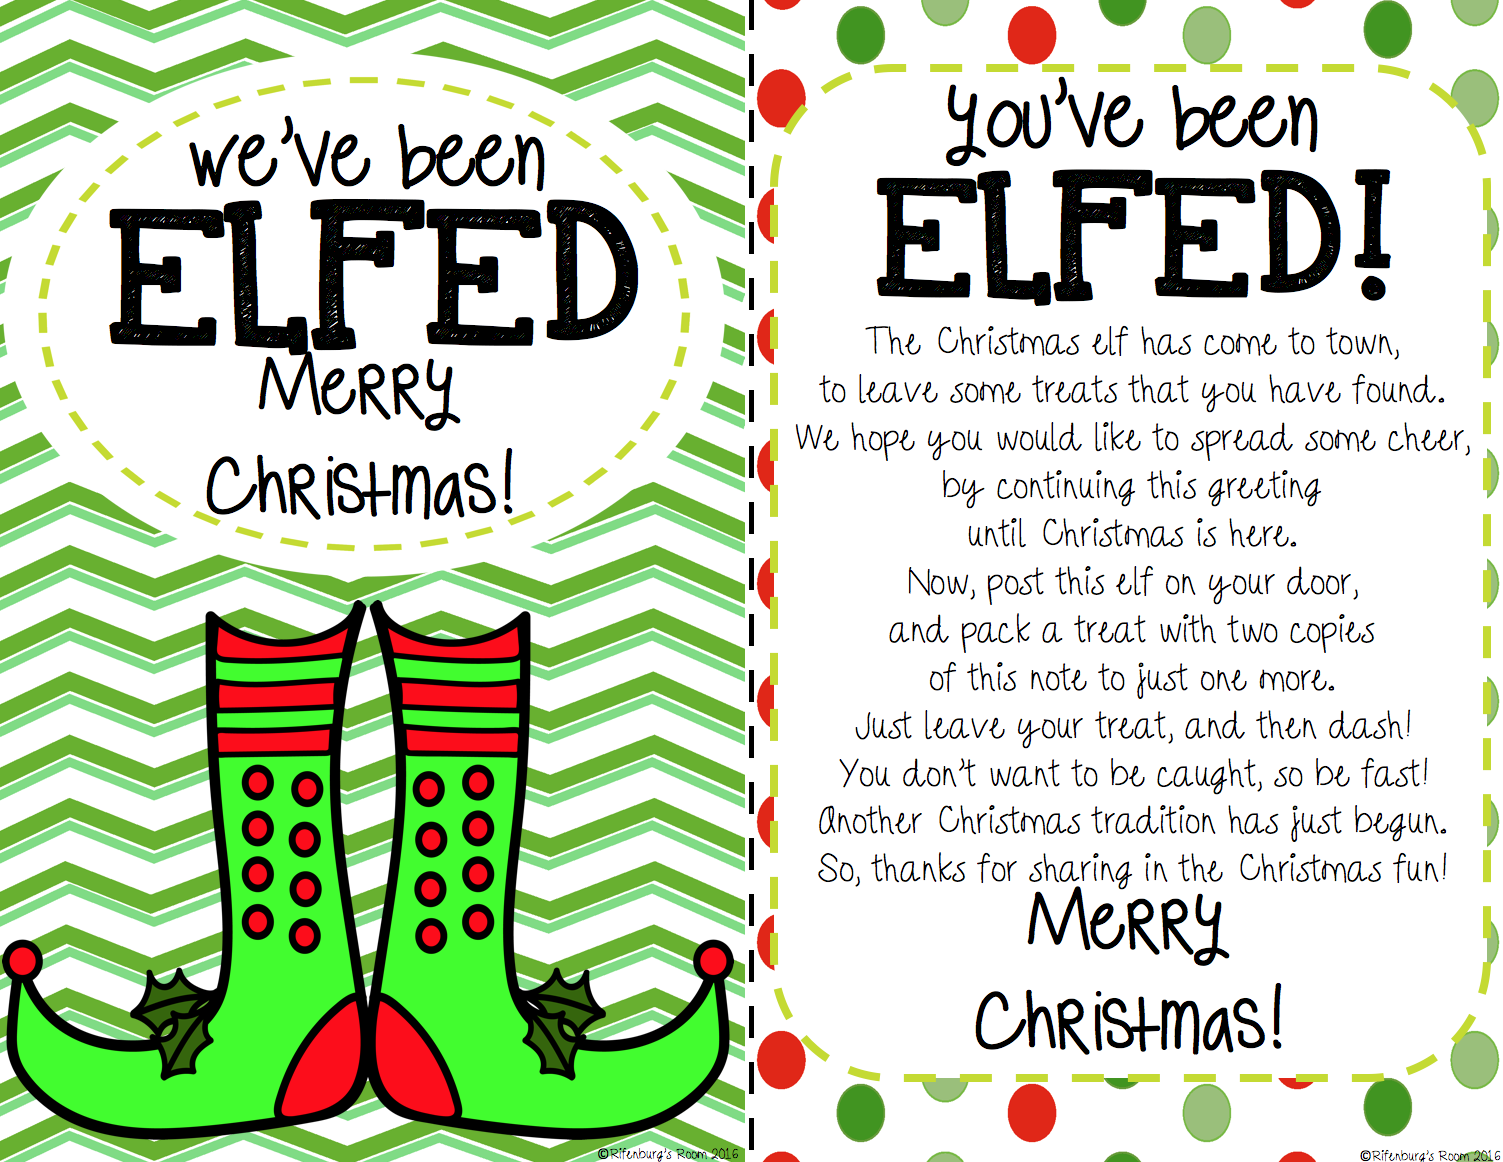 photo about You've Been Elfed Free Printable titled Youve Been Elfed-Elf Exciting-Elf Printable - ELFED Printable